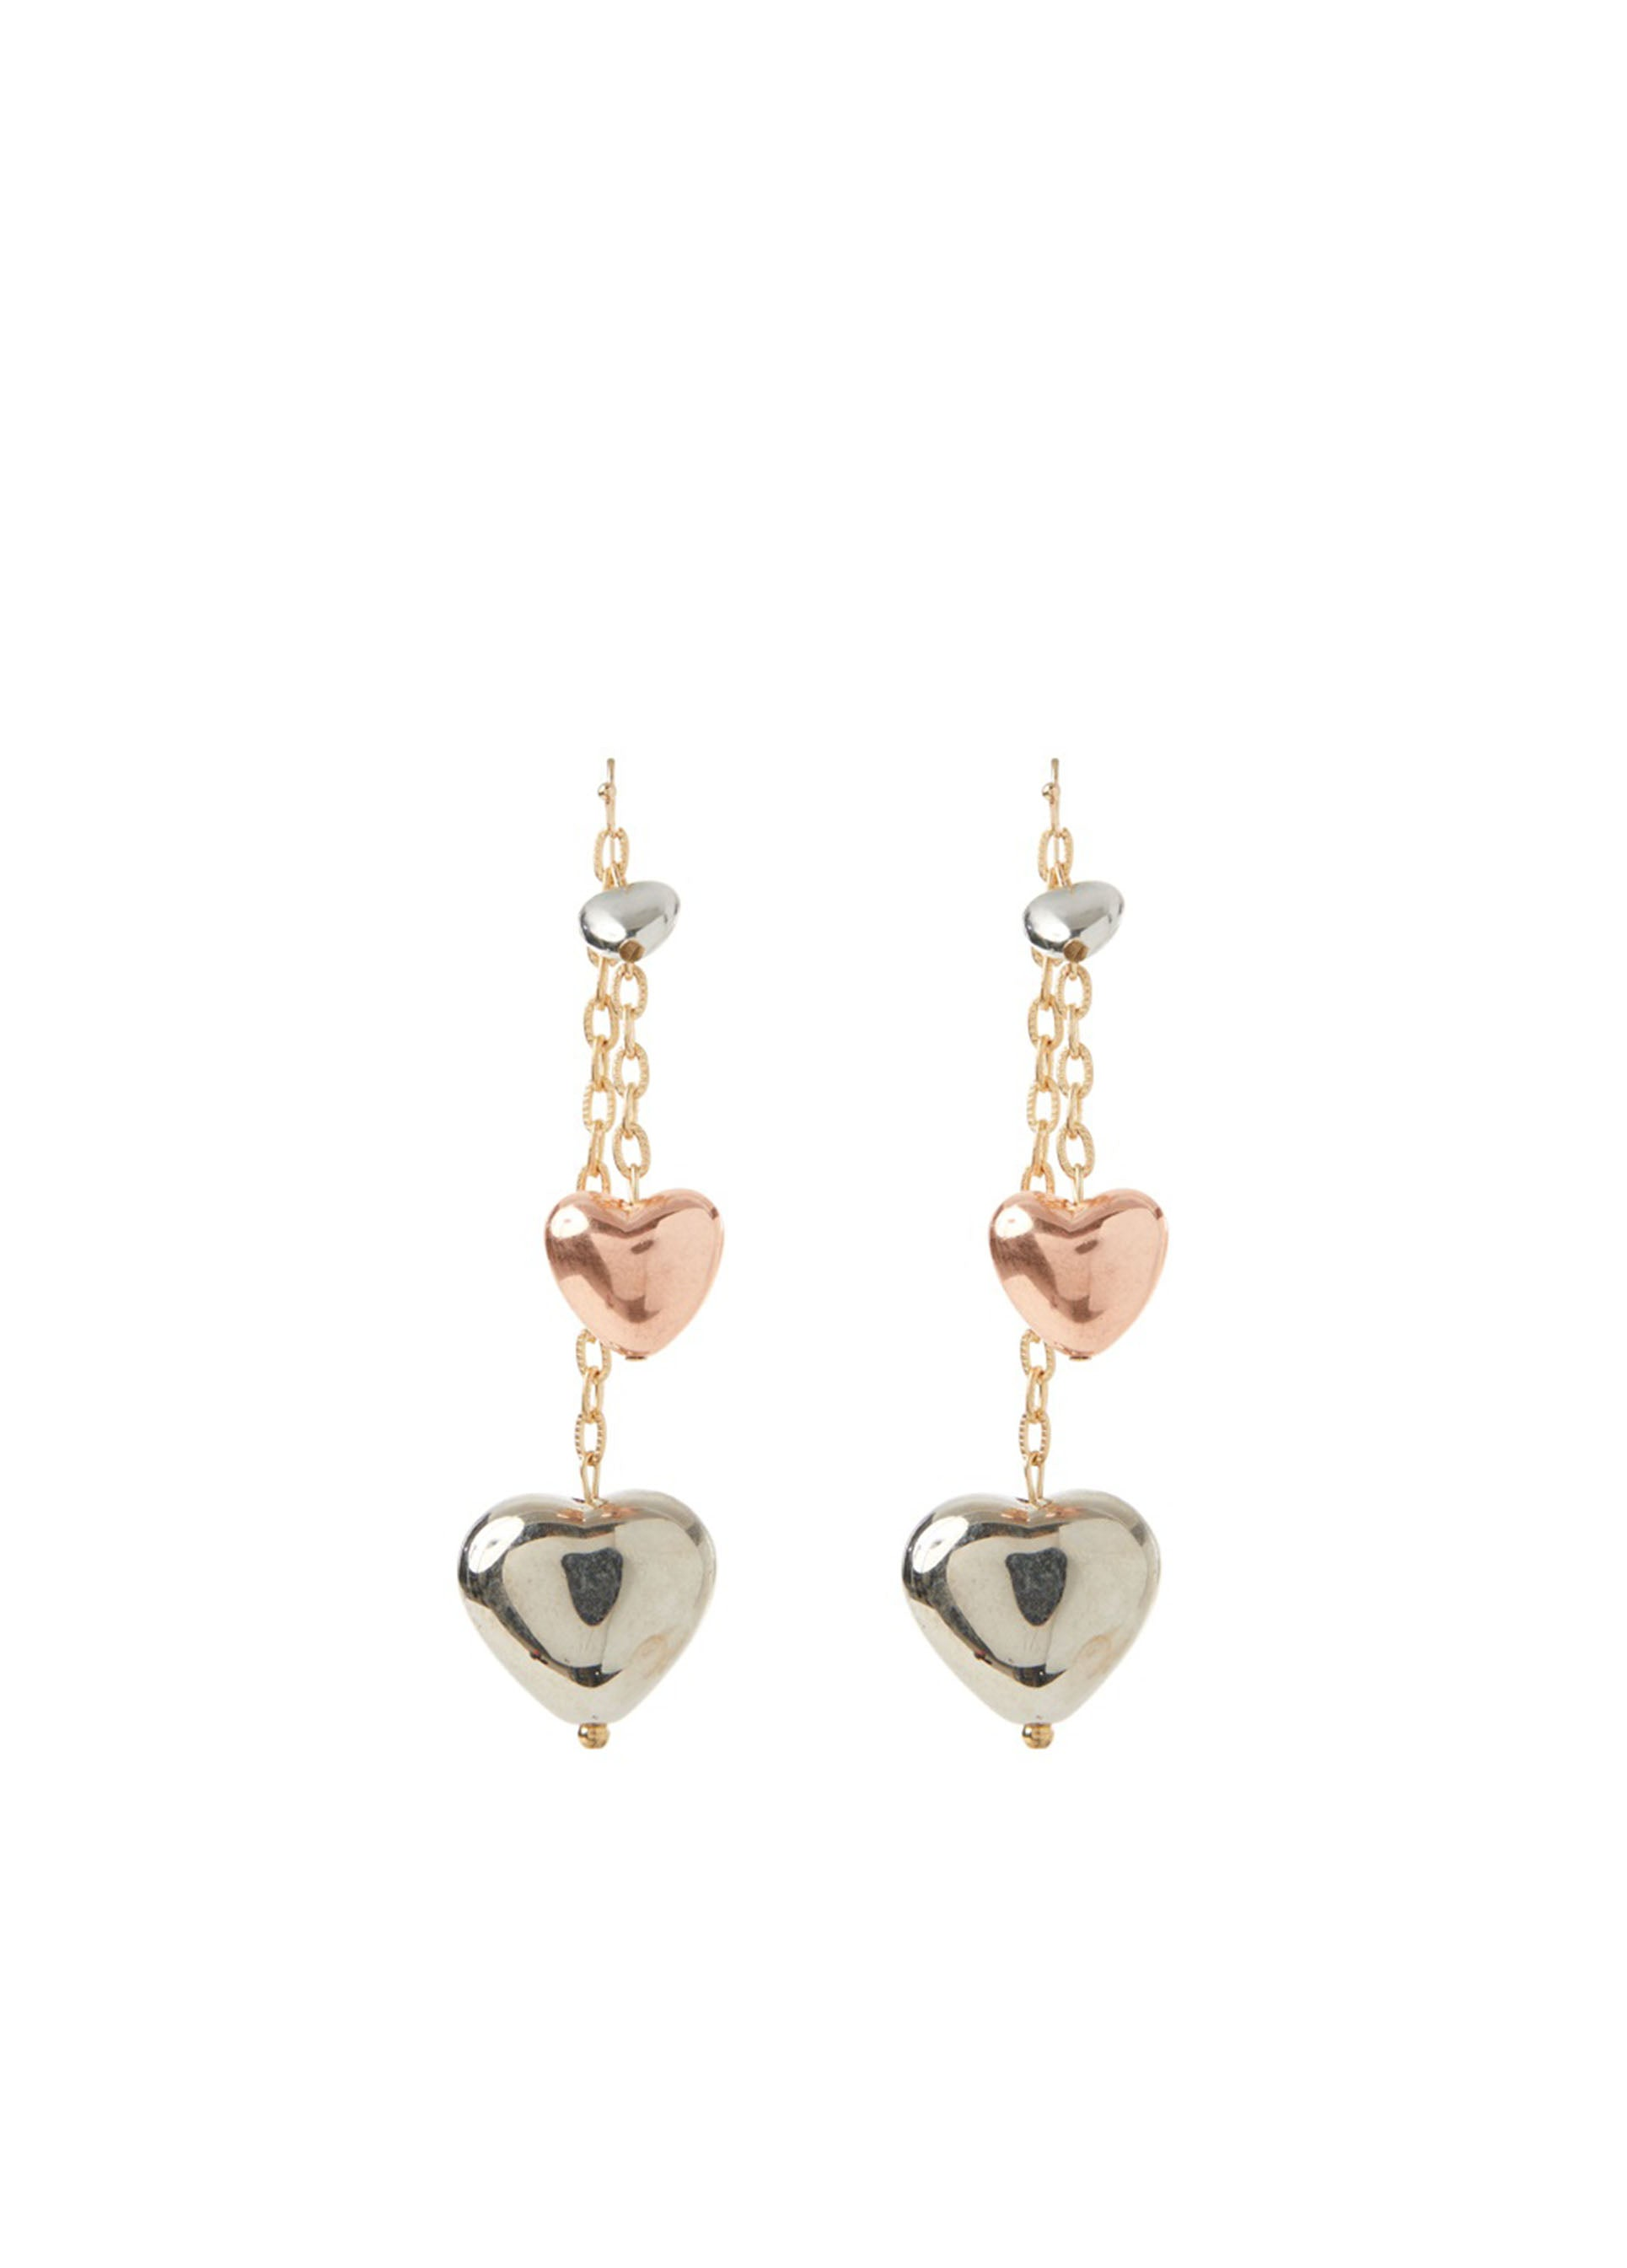 ROMAN USA-Metallic Heart Drop Earring-- [ORIGINAL]